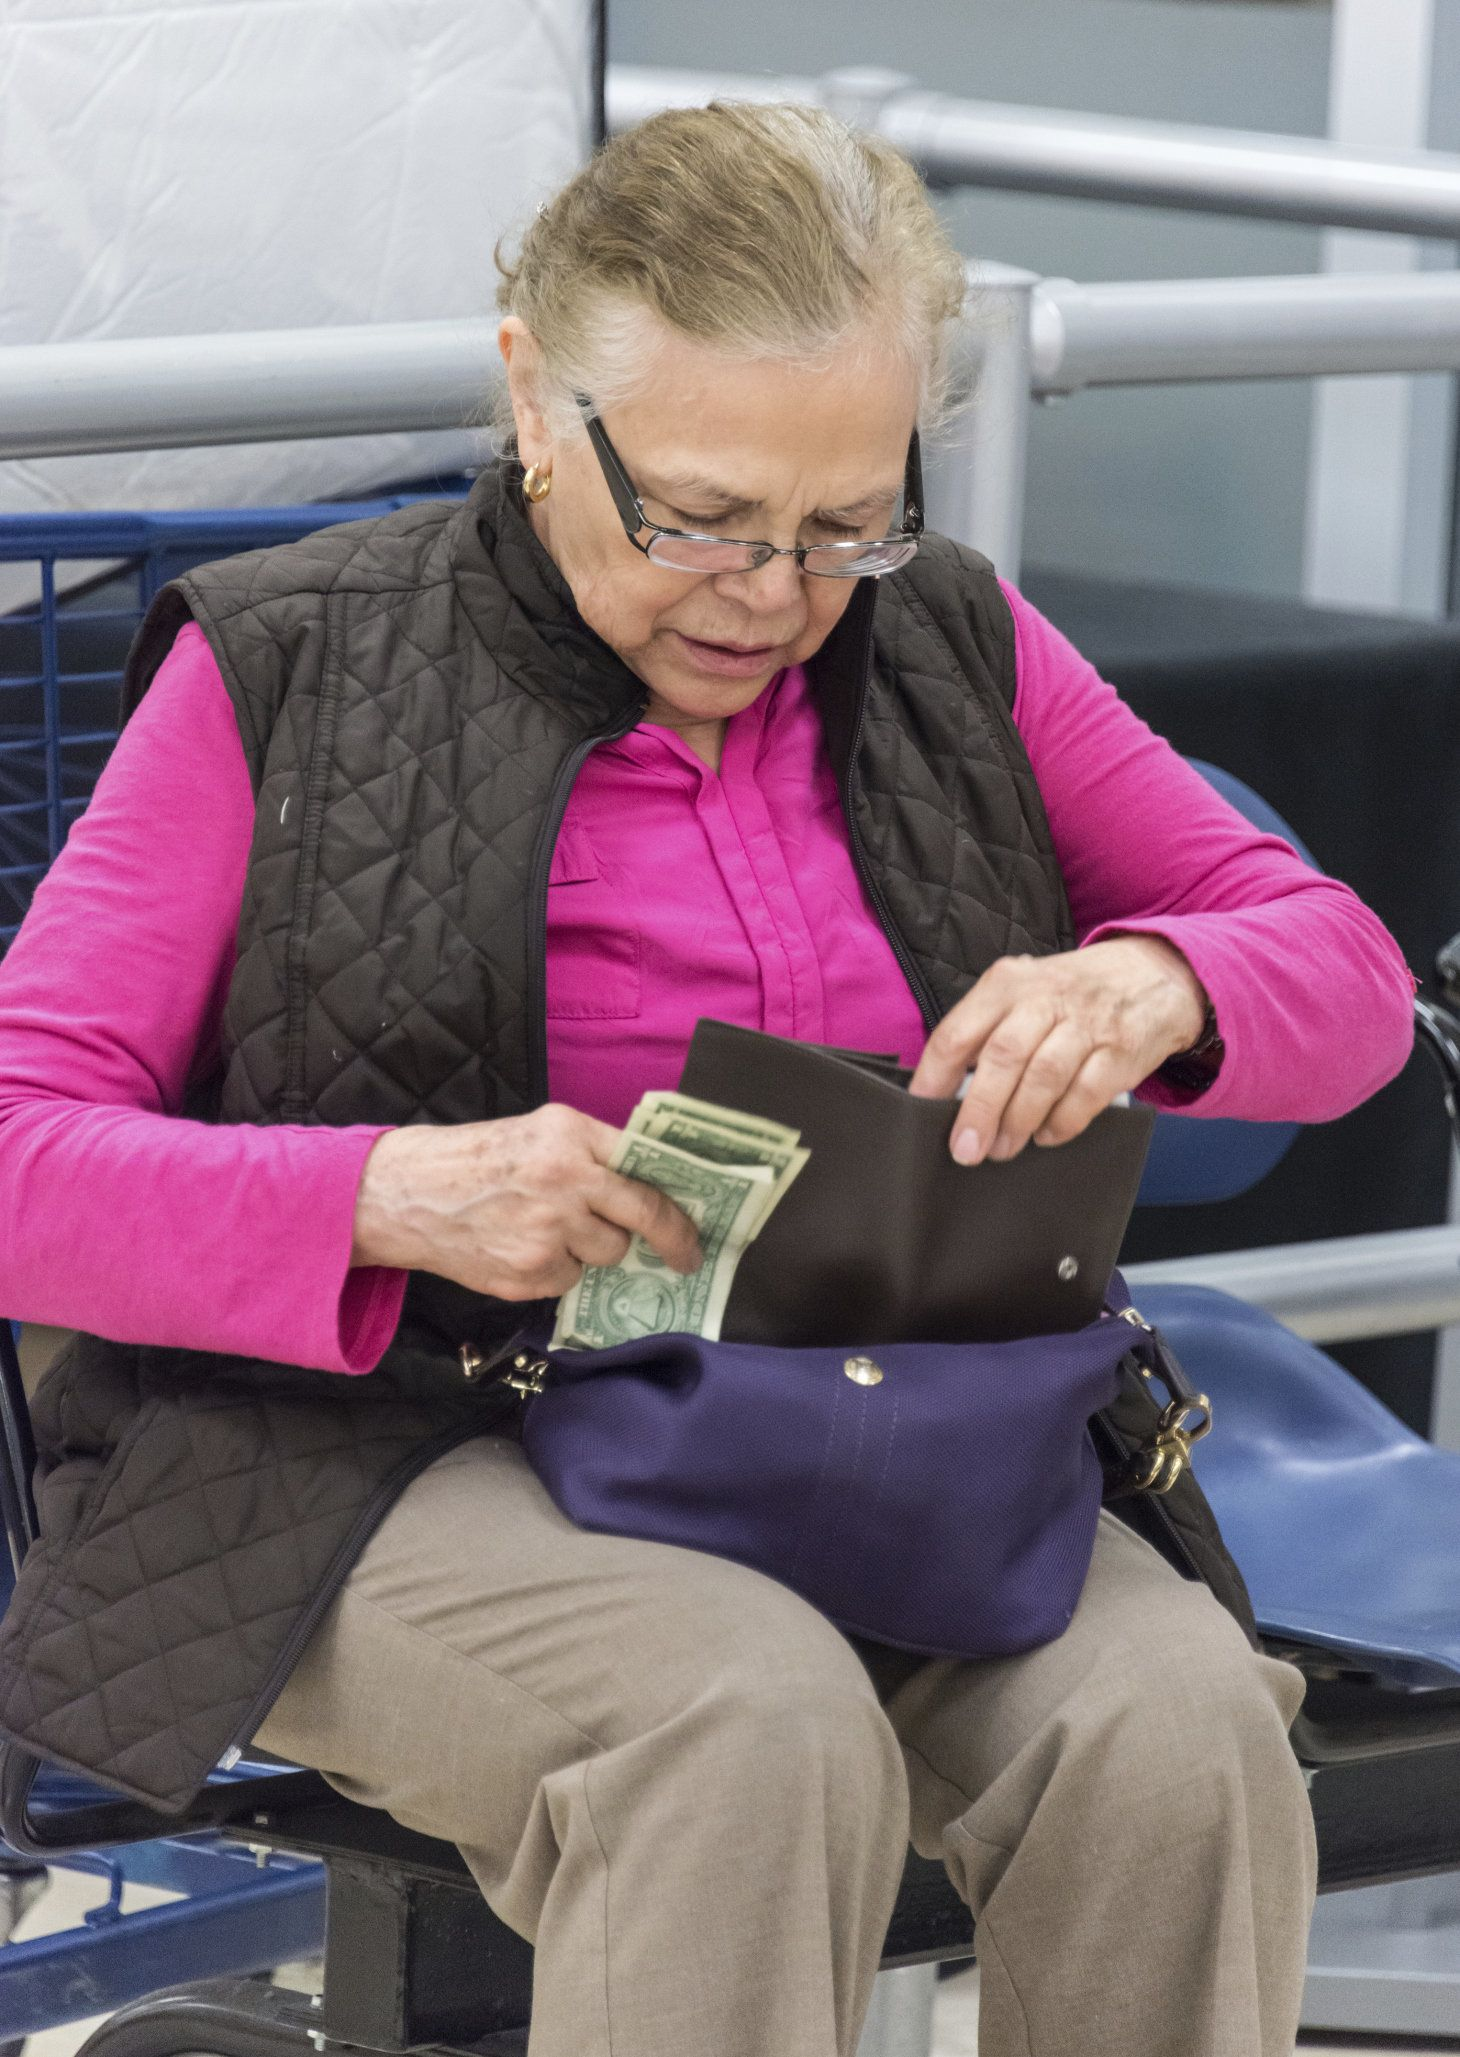 Old lady counting her money sitting at a bus station